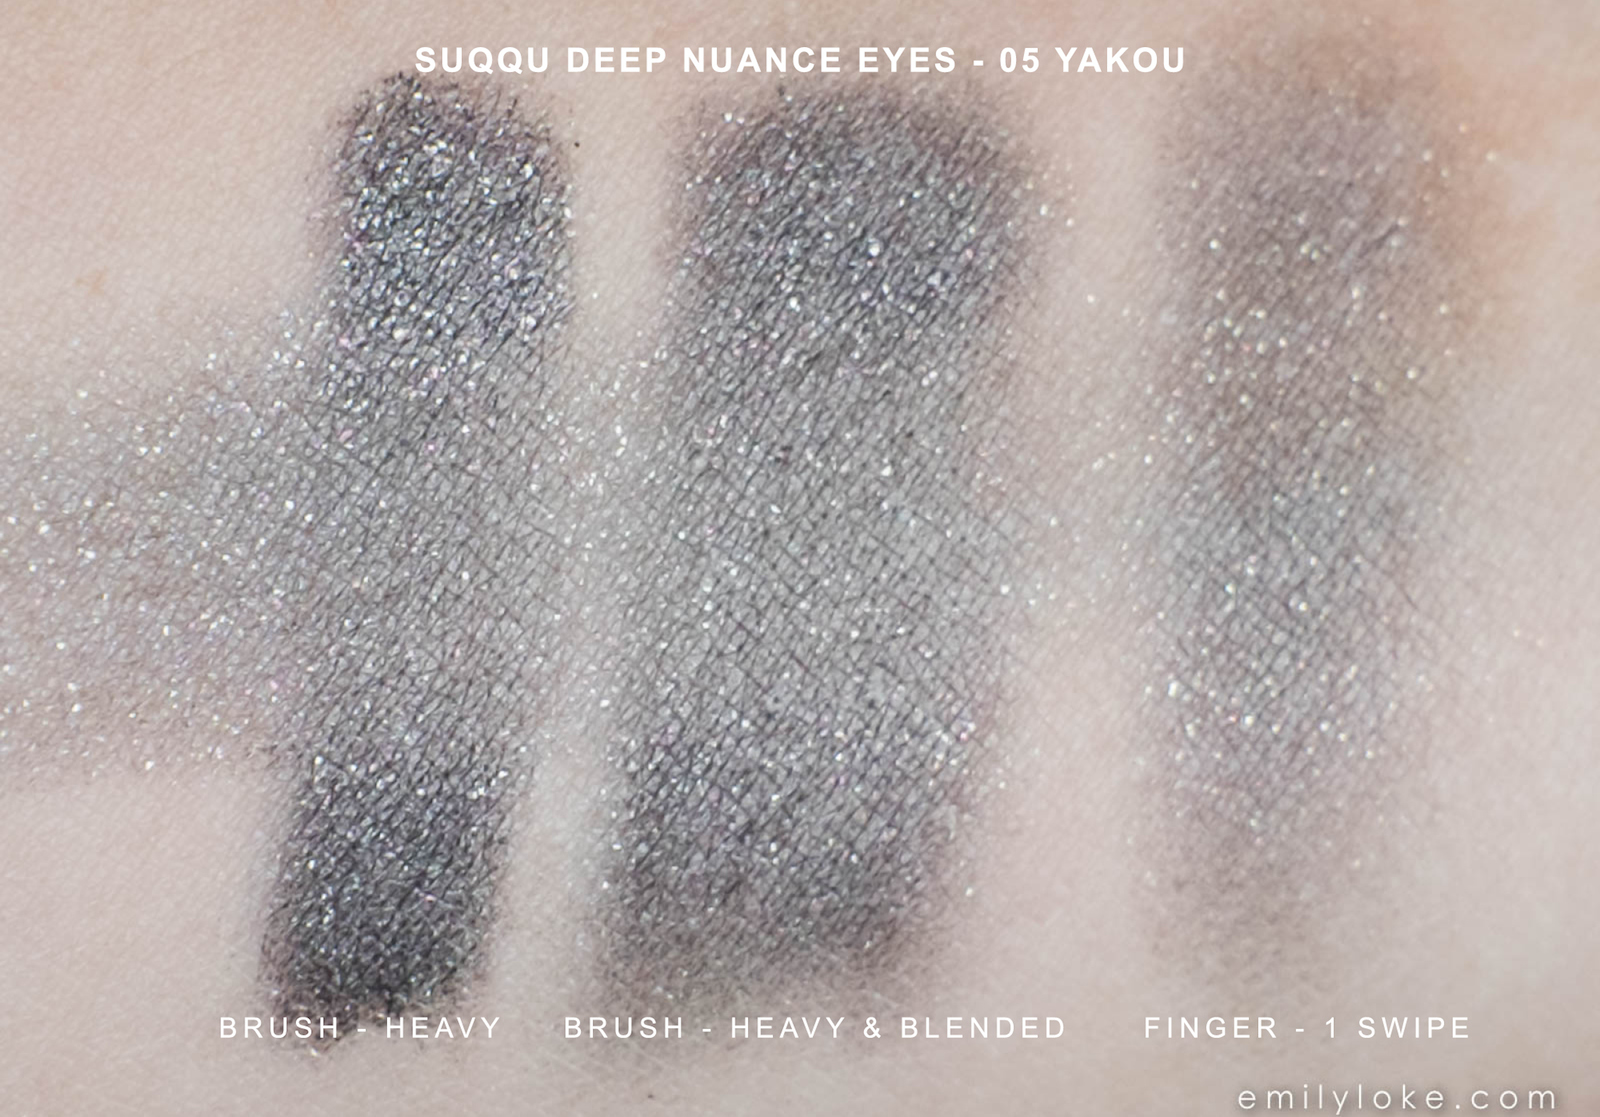 Suqqu Deep Nuance Eyes Yakou swatches 2